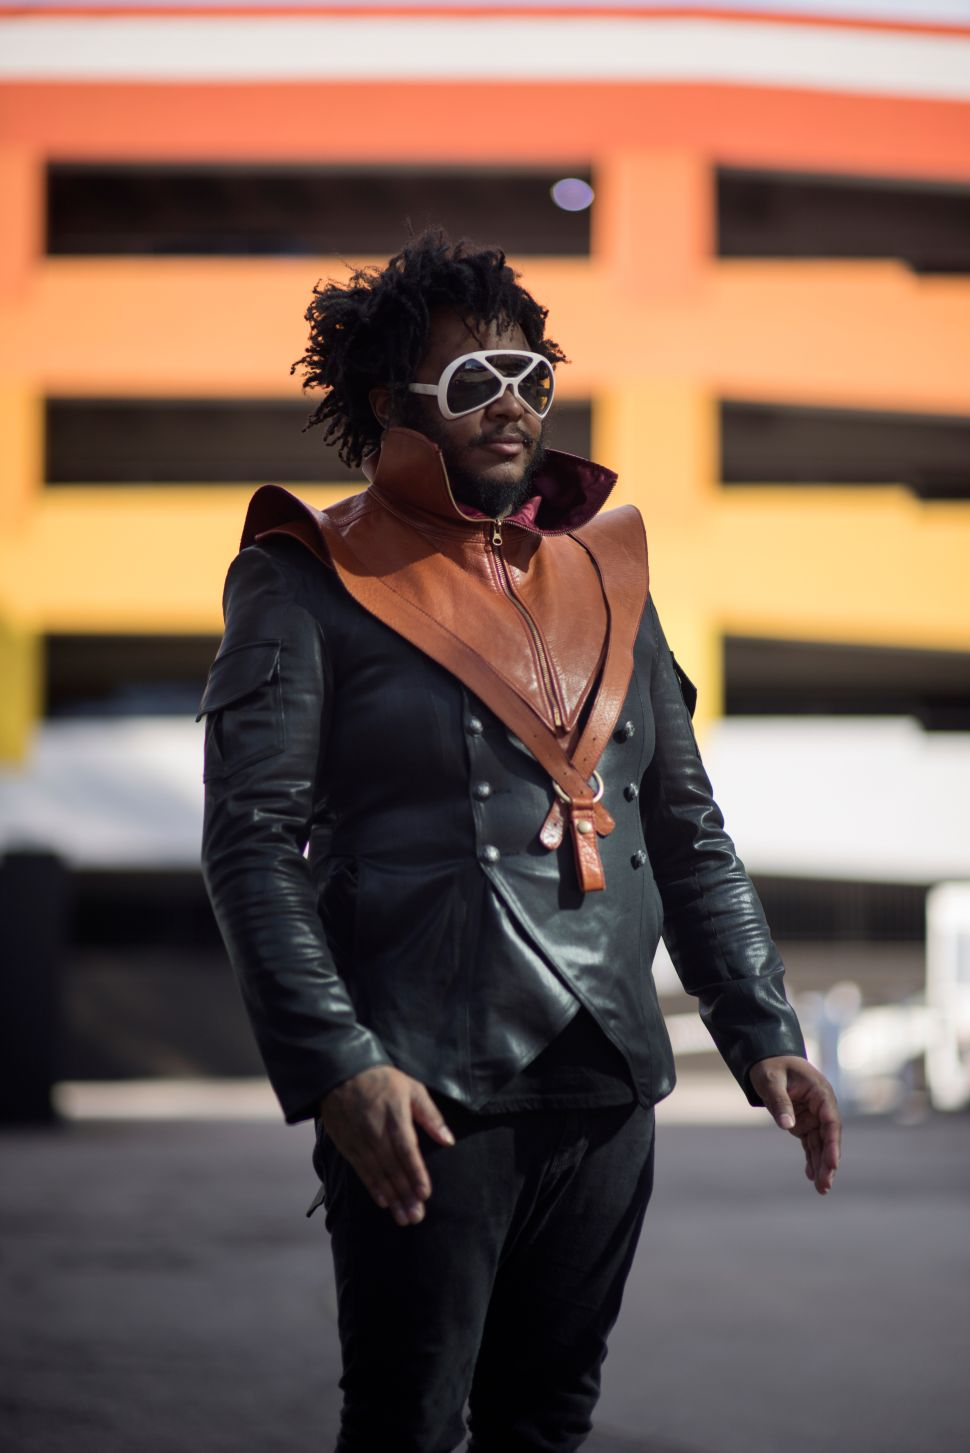 A Wise Man Acts a Fool: Thundercat on Expanding Minds and Expectations